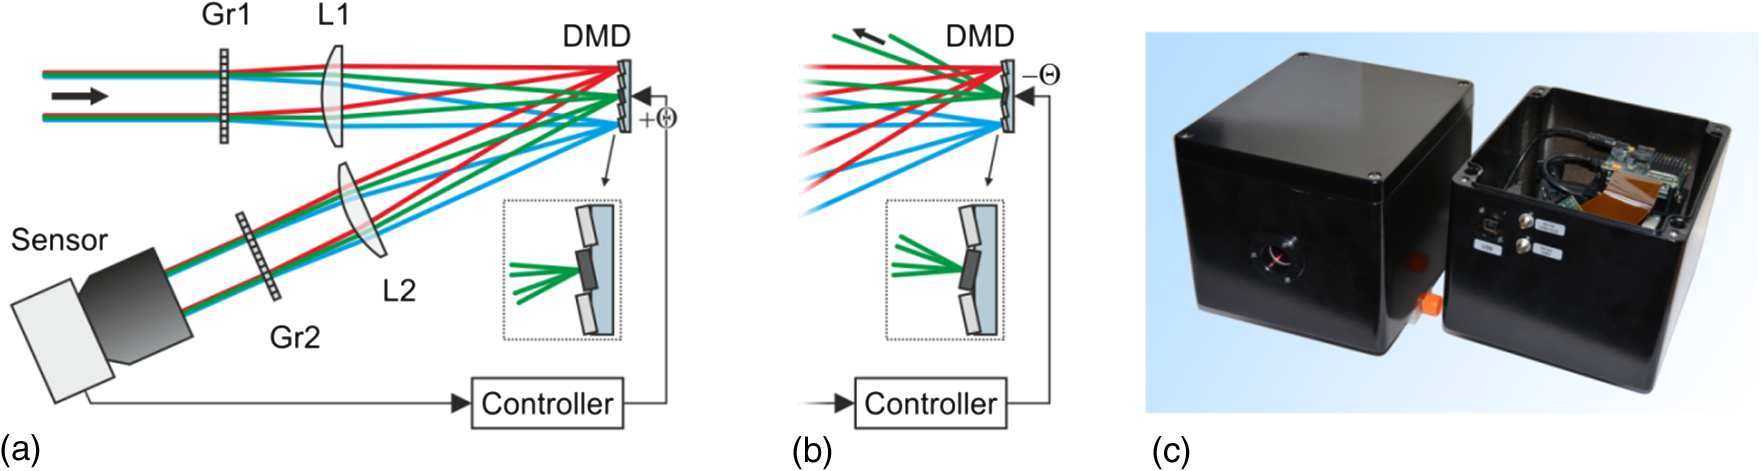 Laser Induced Damage Threshold Of Camera Sensors And Micro Diode Circuit Diagram Also Diagrams How Works Furthermore Concept For Hardening A Sensor Against Dazzling Using Dmd Operation Mode Regular Imaging B With High Attenuation